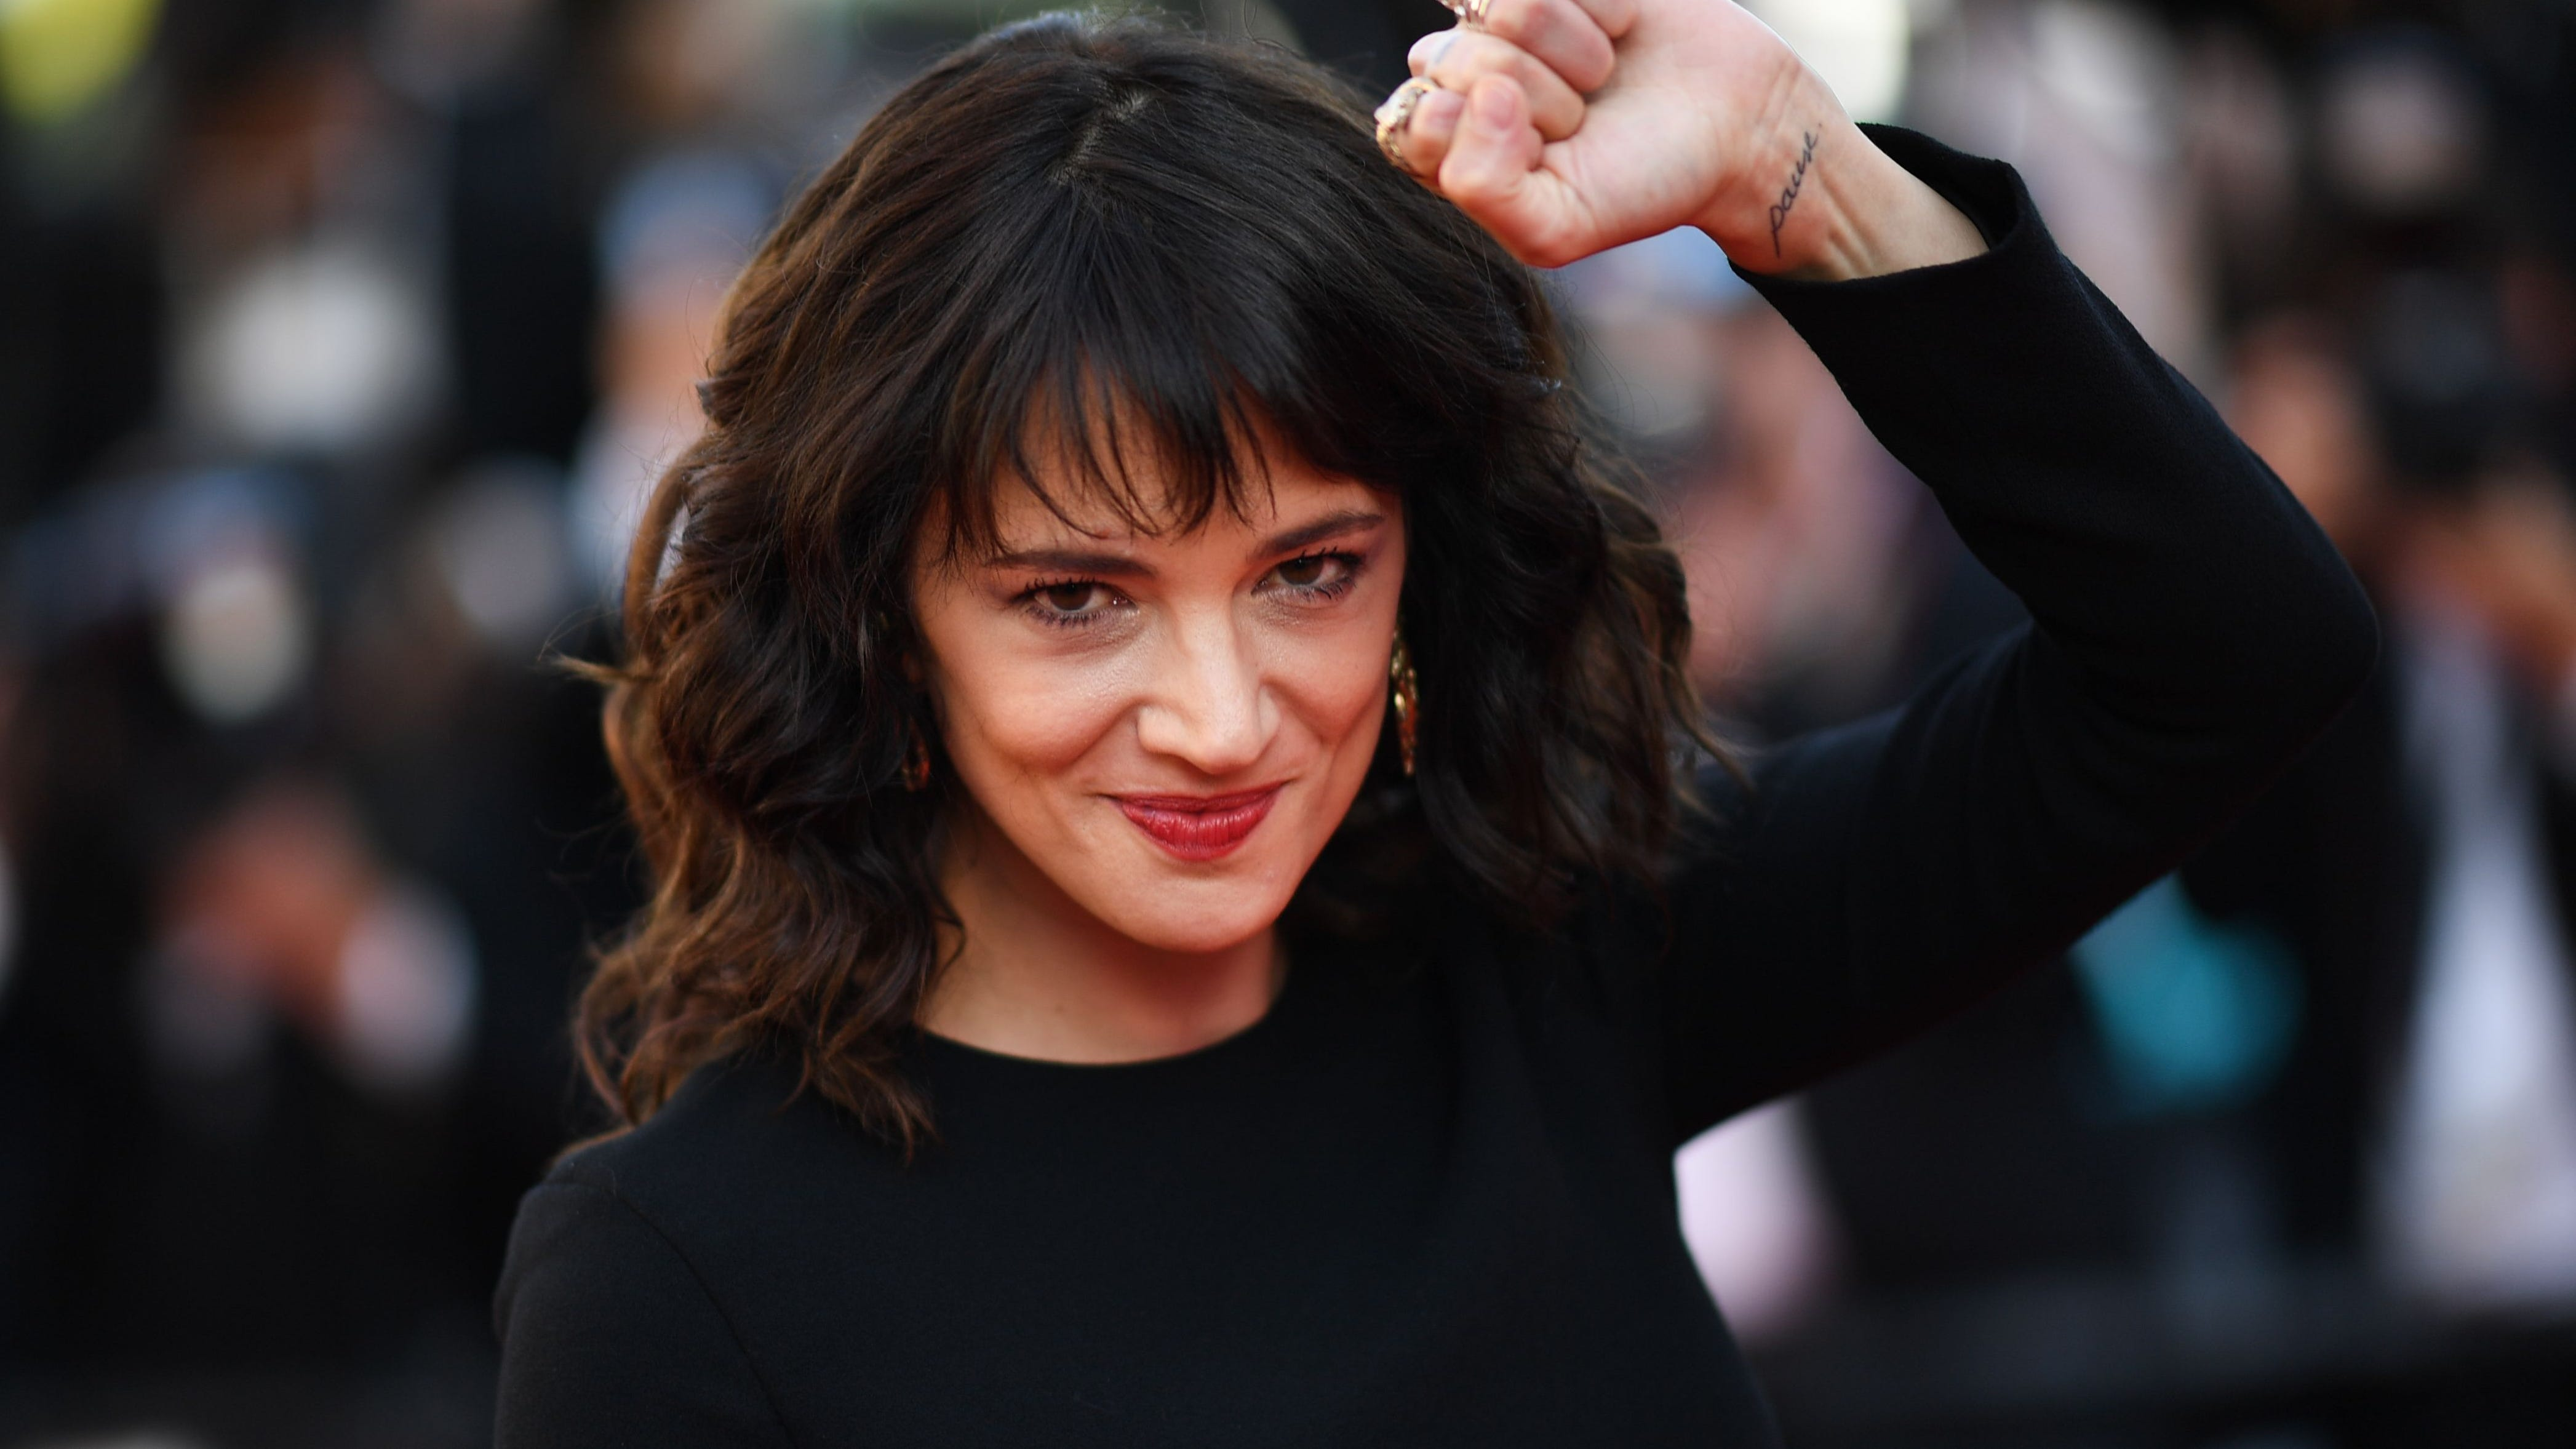 Italian actress Asia Argento at the Cannes Film Festival in Cannes, France, on May 19, 2018. ORIG FILE ID: AFP_18H171